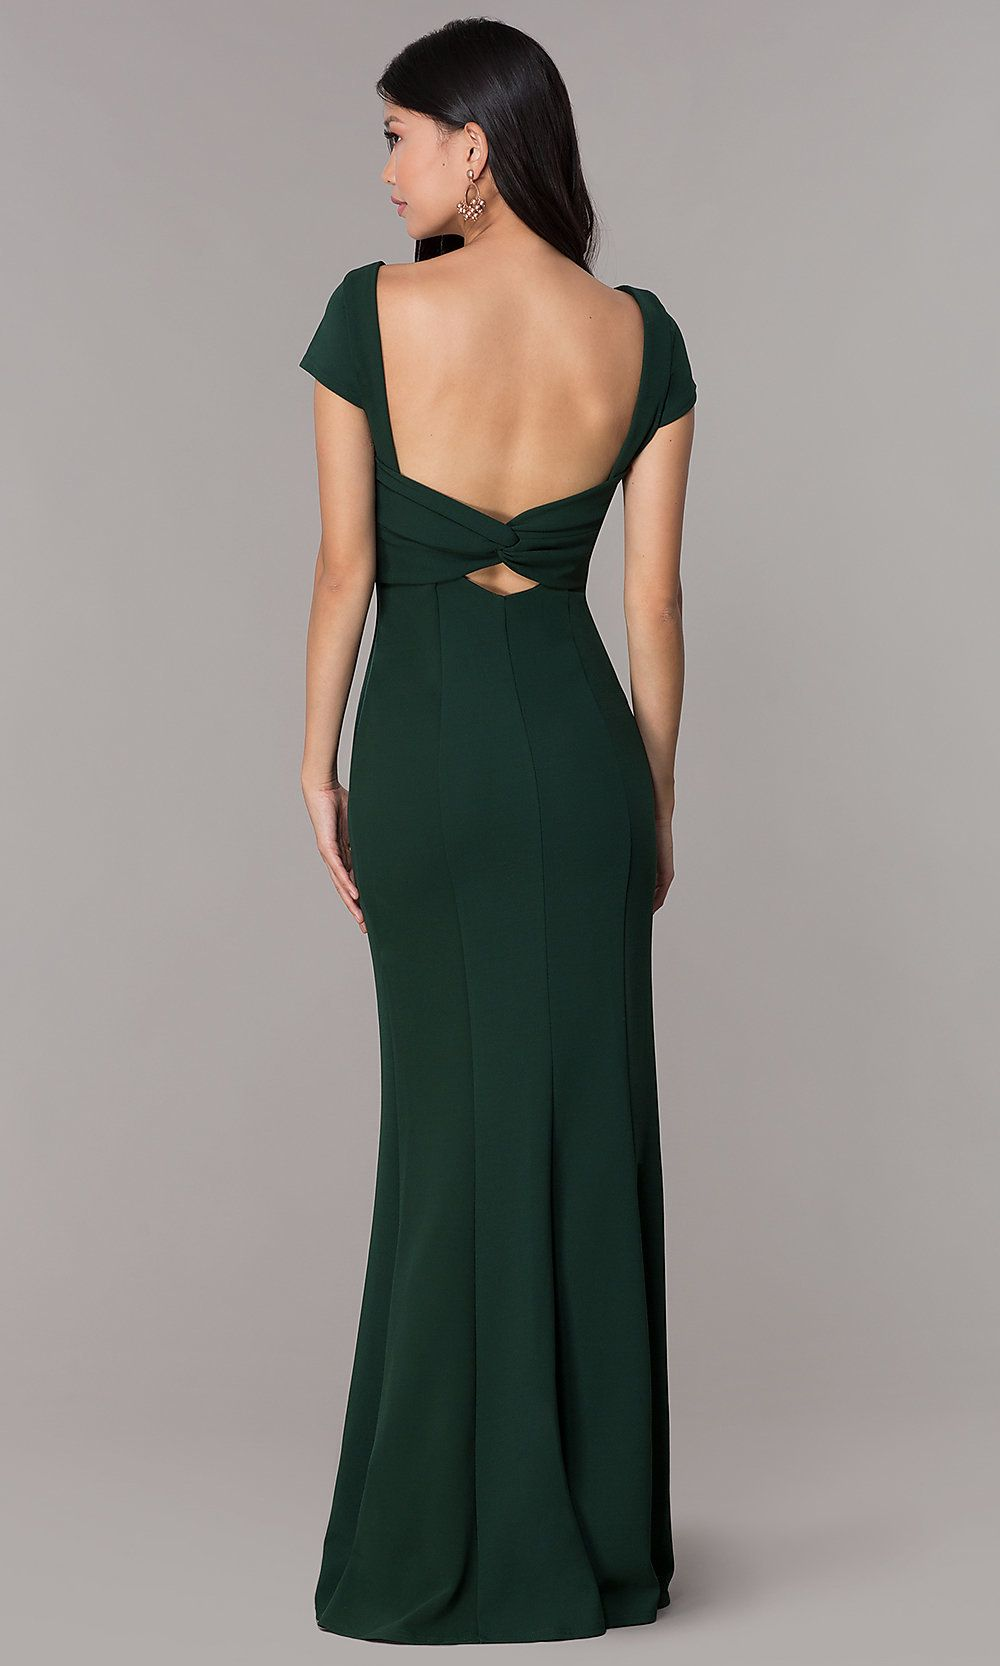 dd0d5543979 Long Navy Short-Sleeve Prom Dress with Open Back